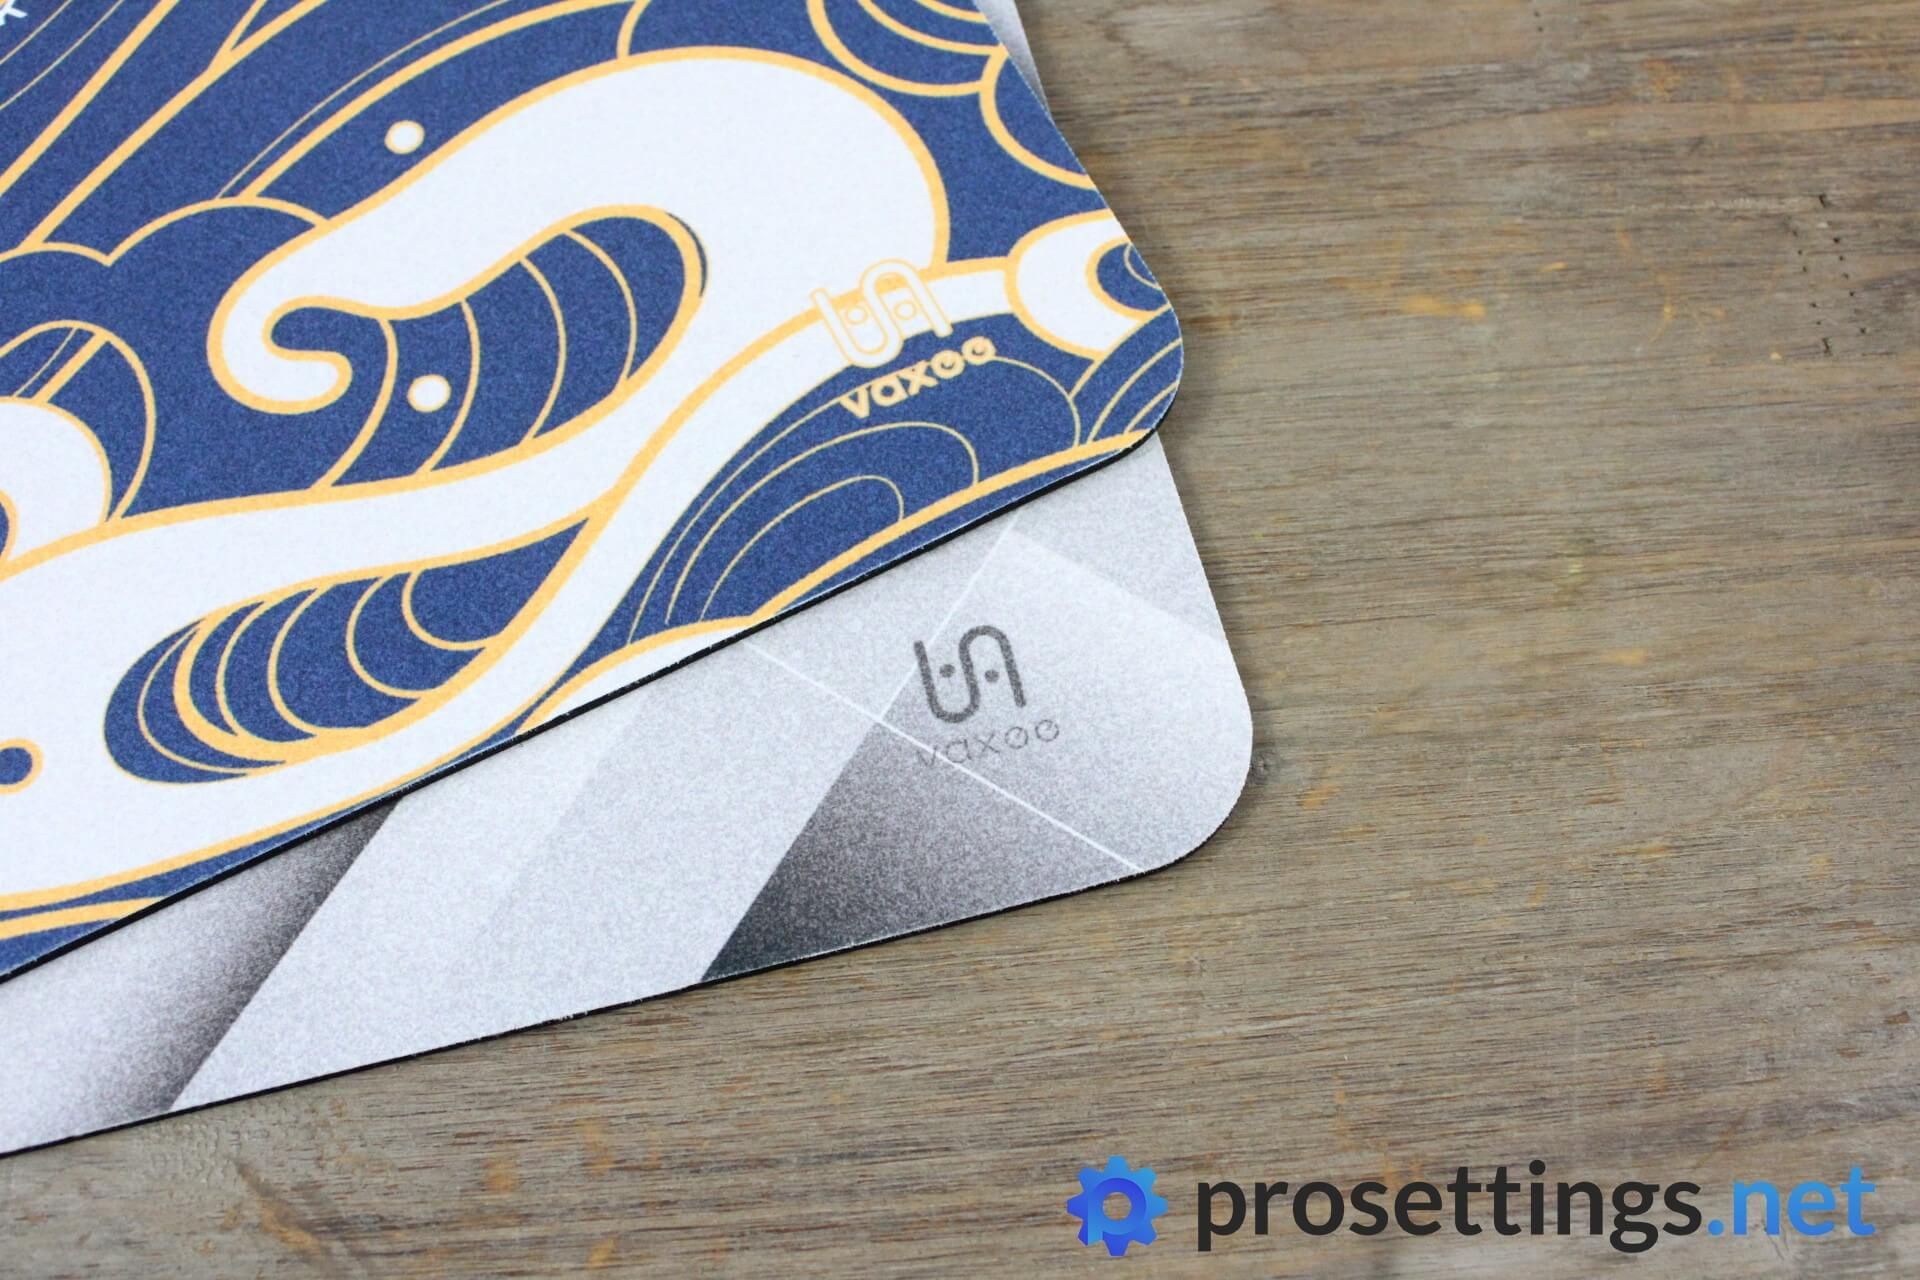 VAXEE PA Review Mousepad